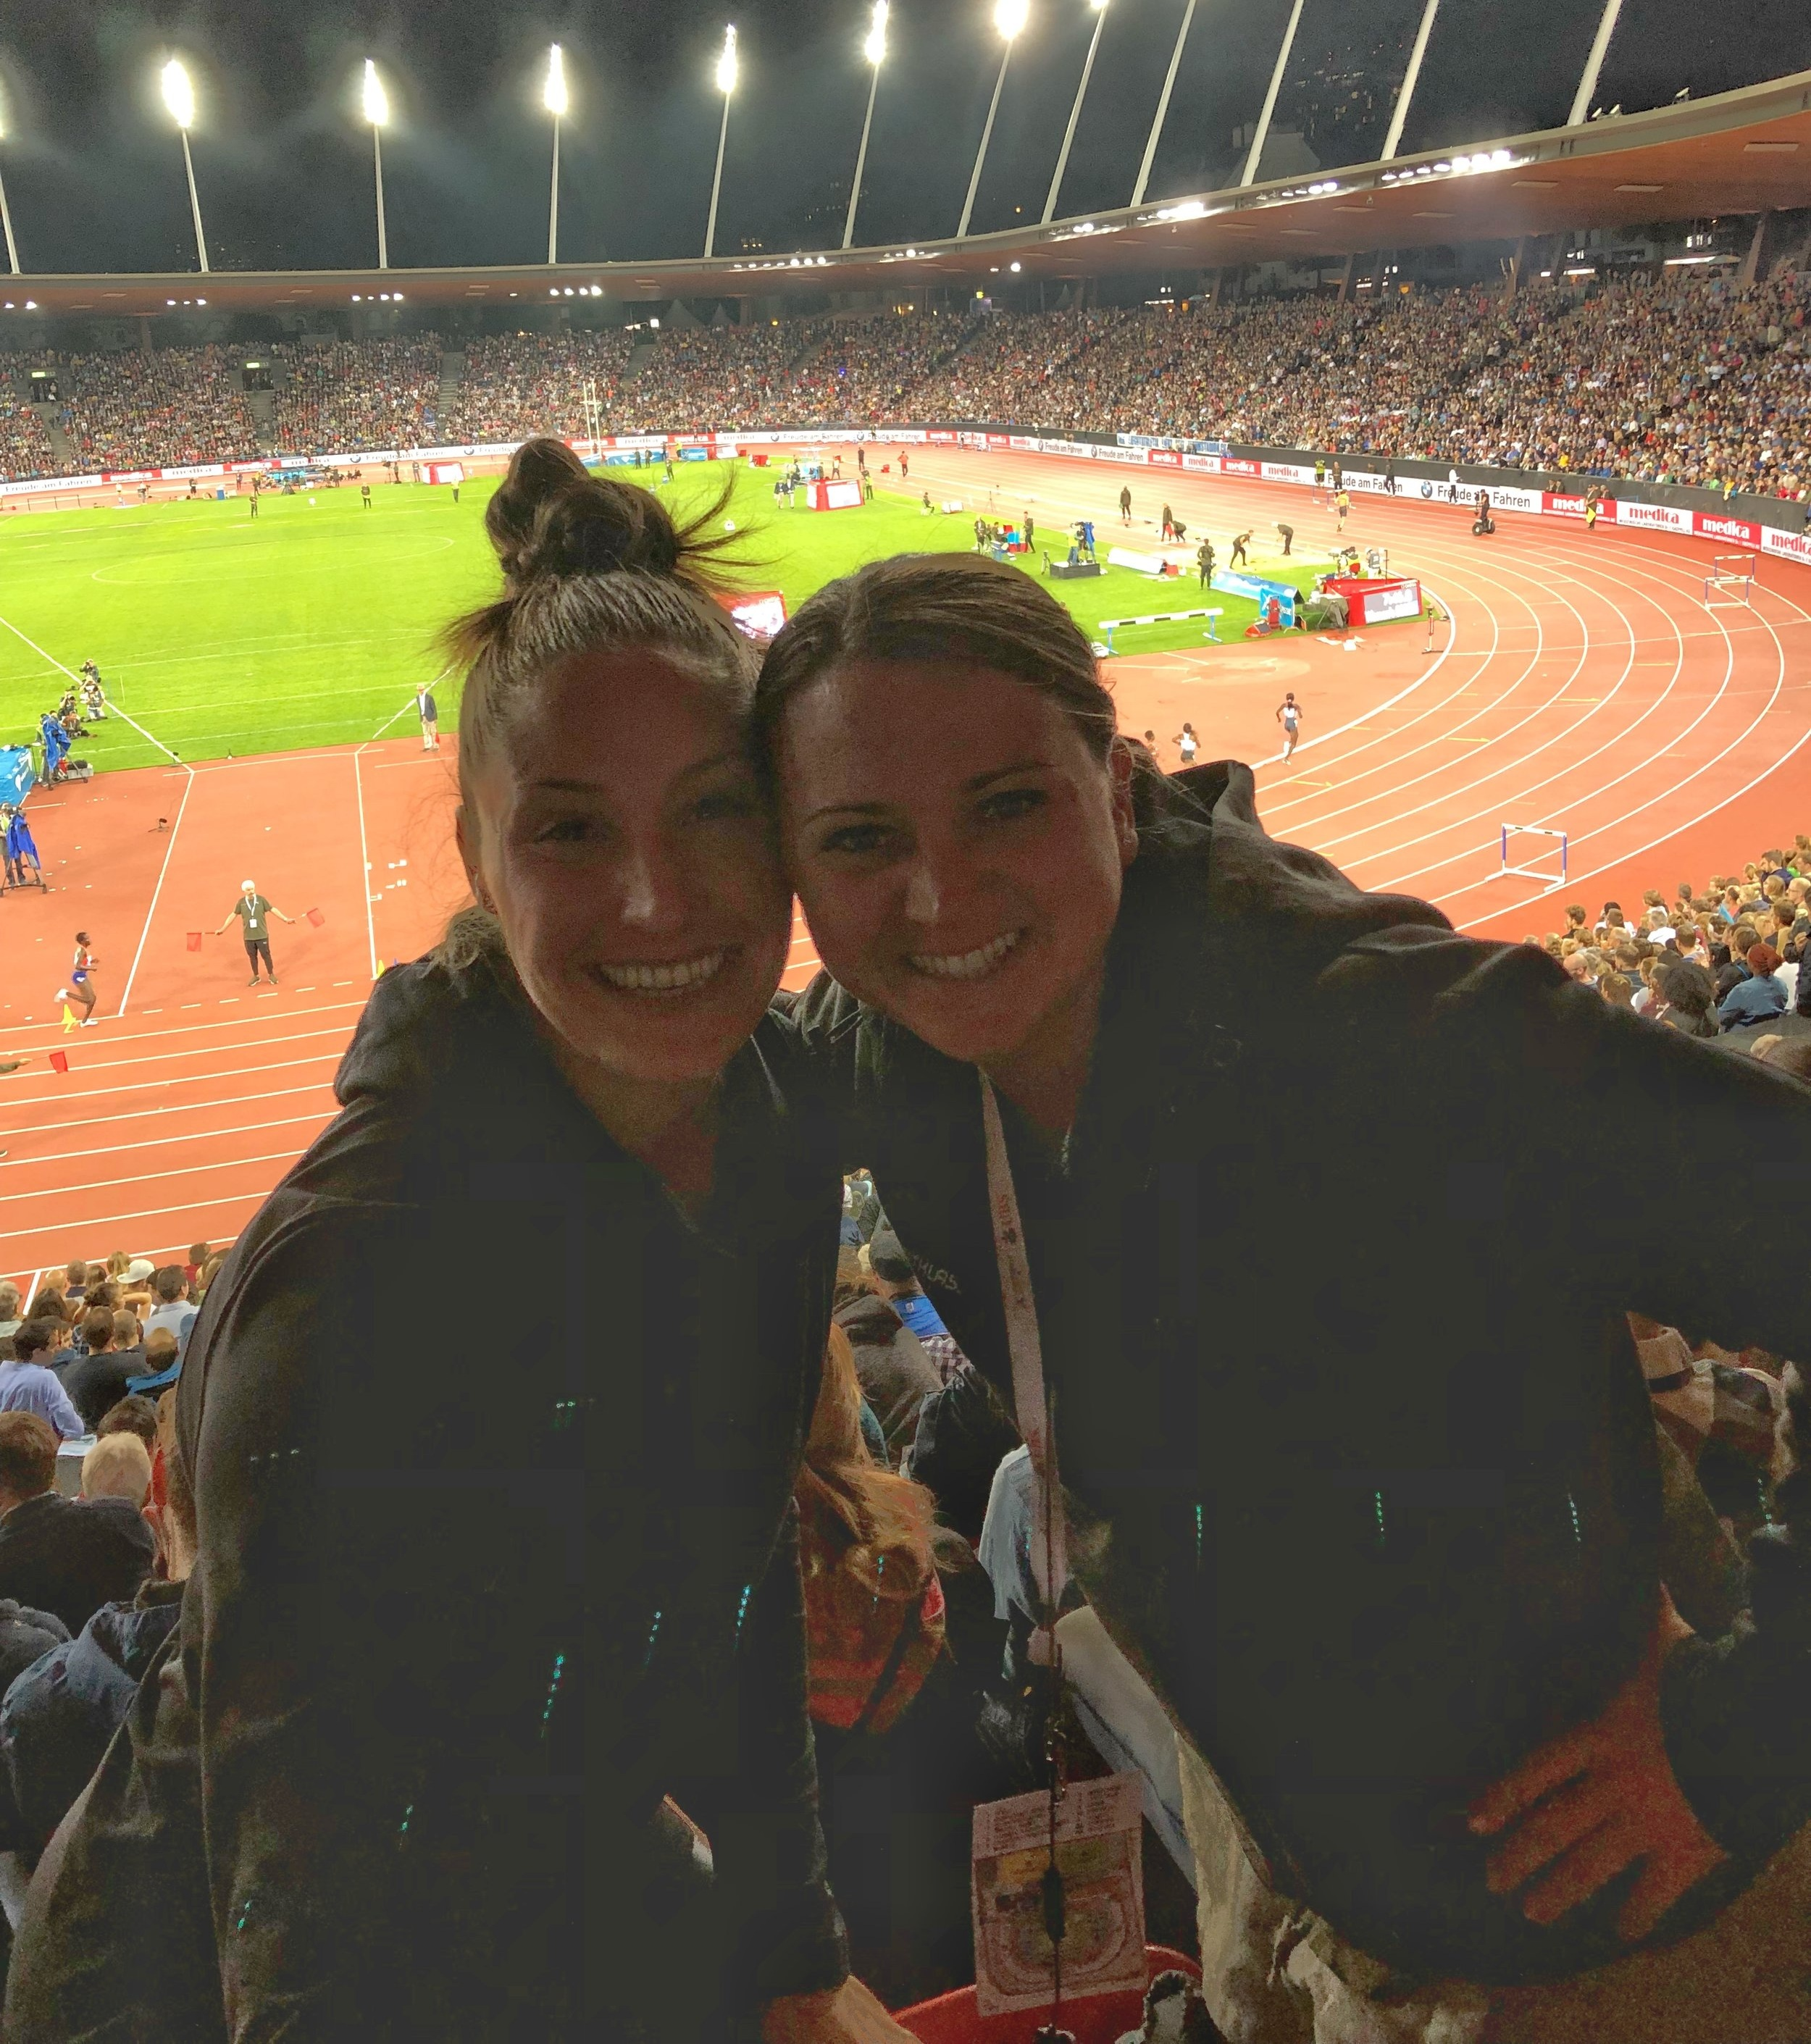 Post-2018 Diamond League Final, happy in the stands!